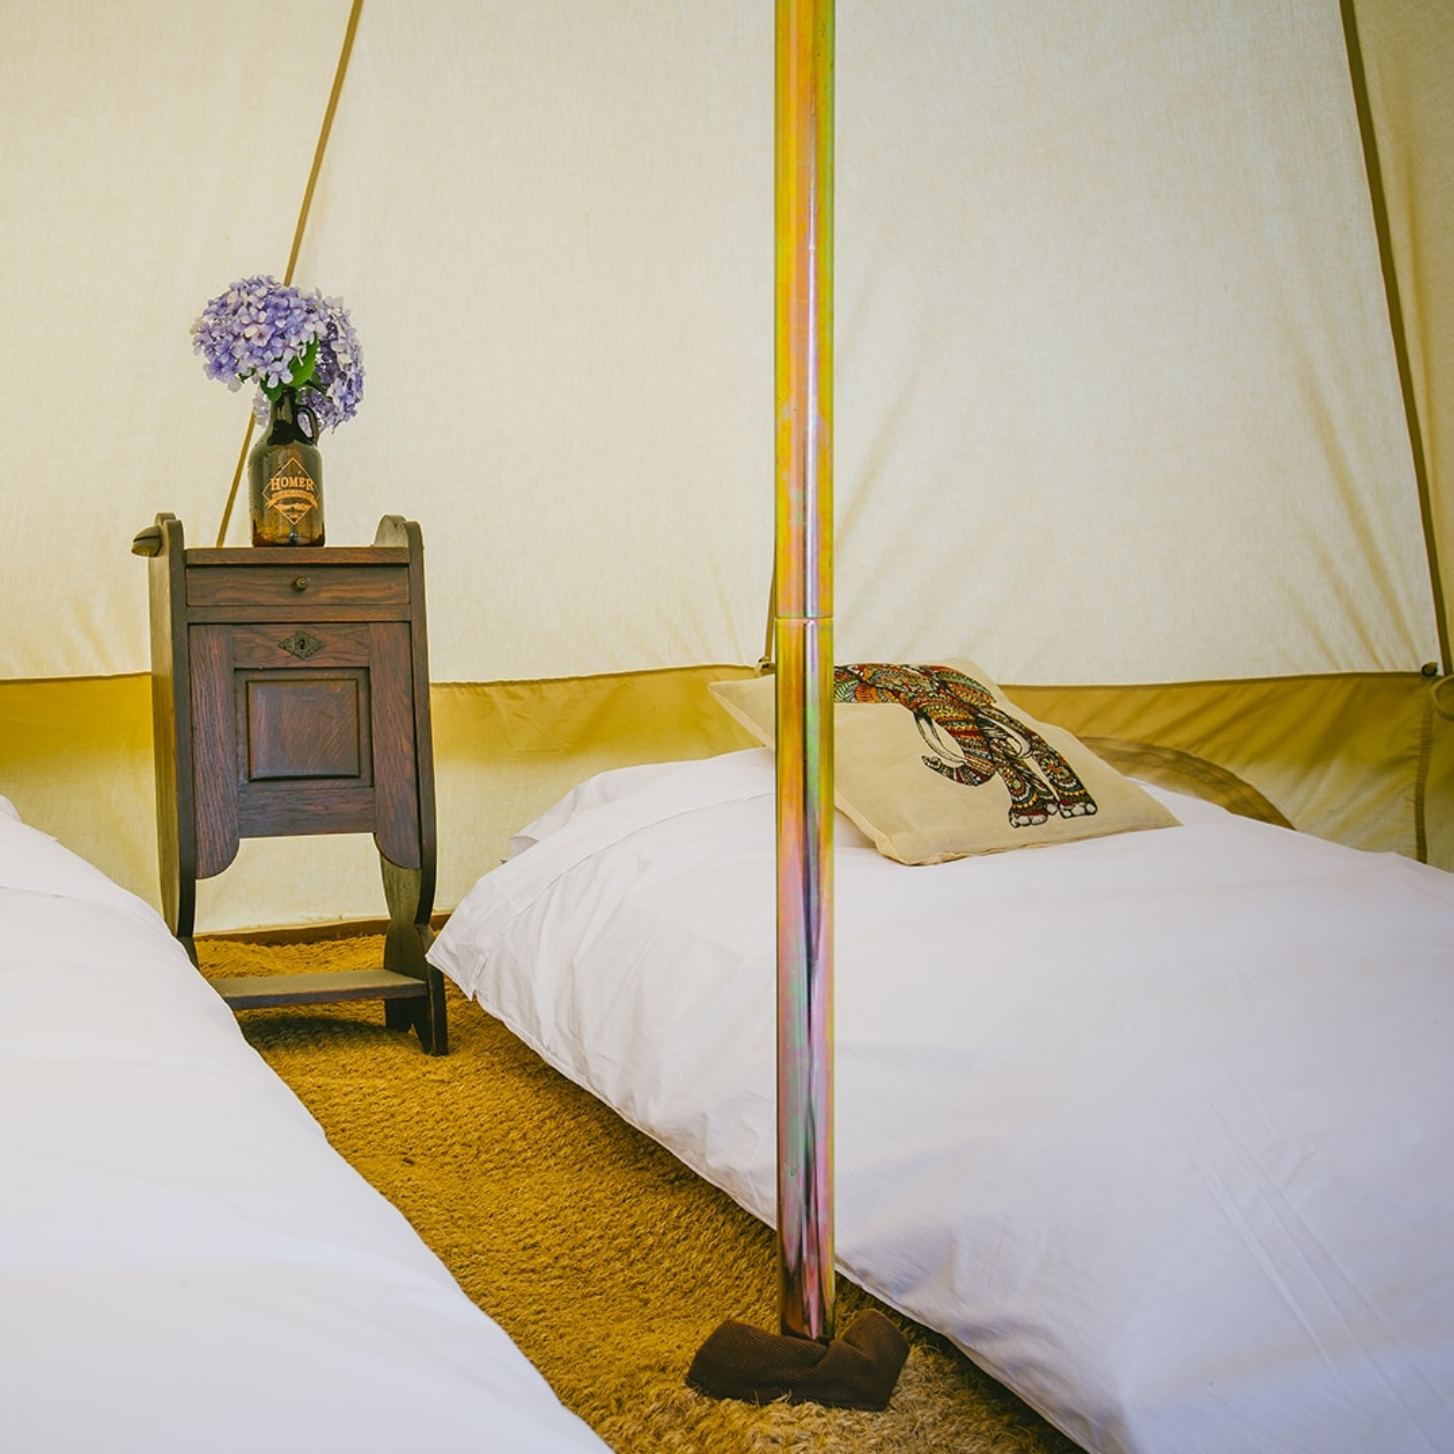 Snazzy_Camp_Biarritz_glamping_paysbasque_holidays (40).jpg